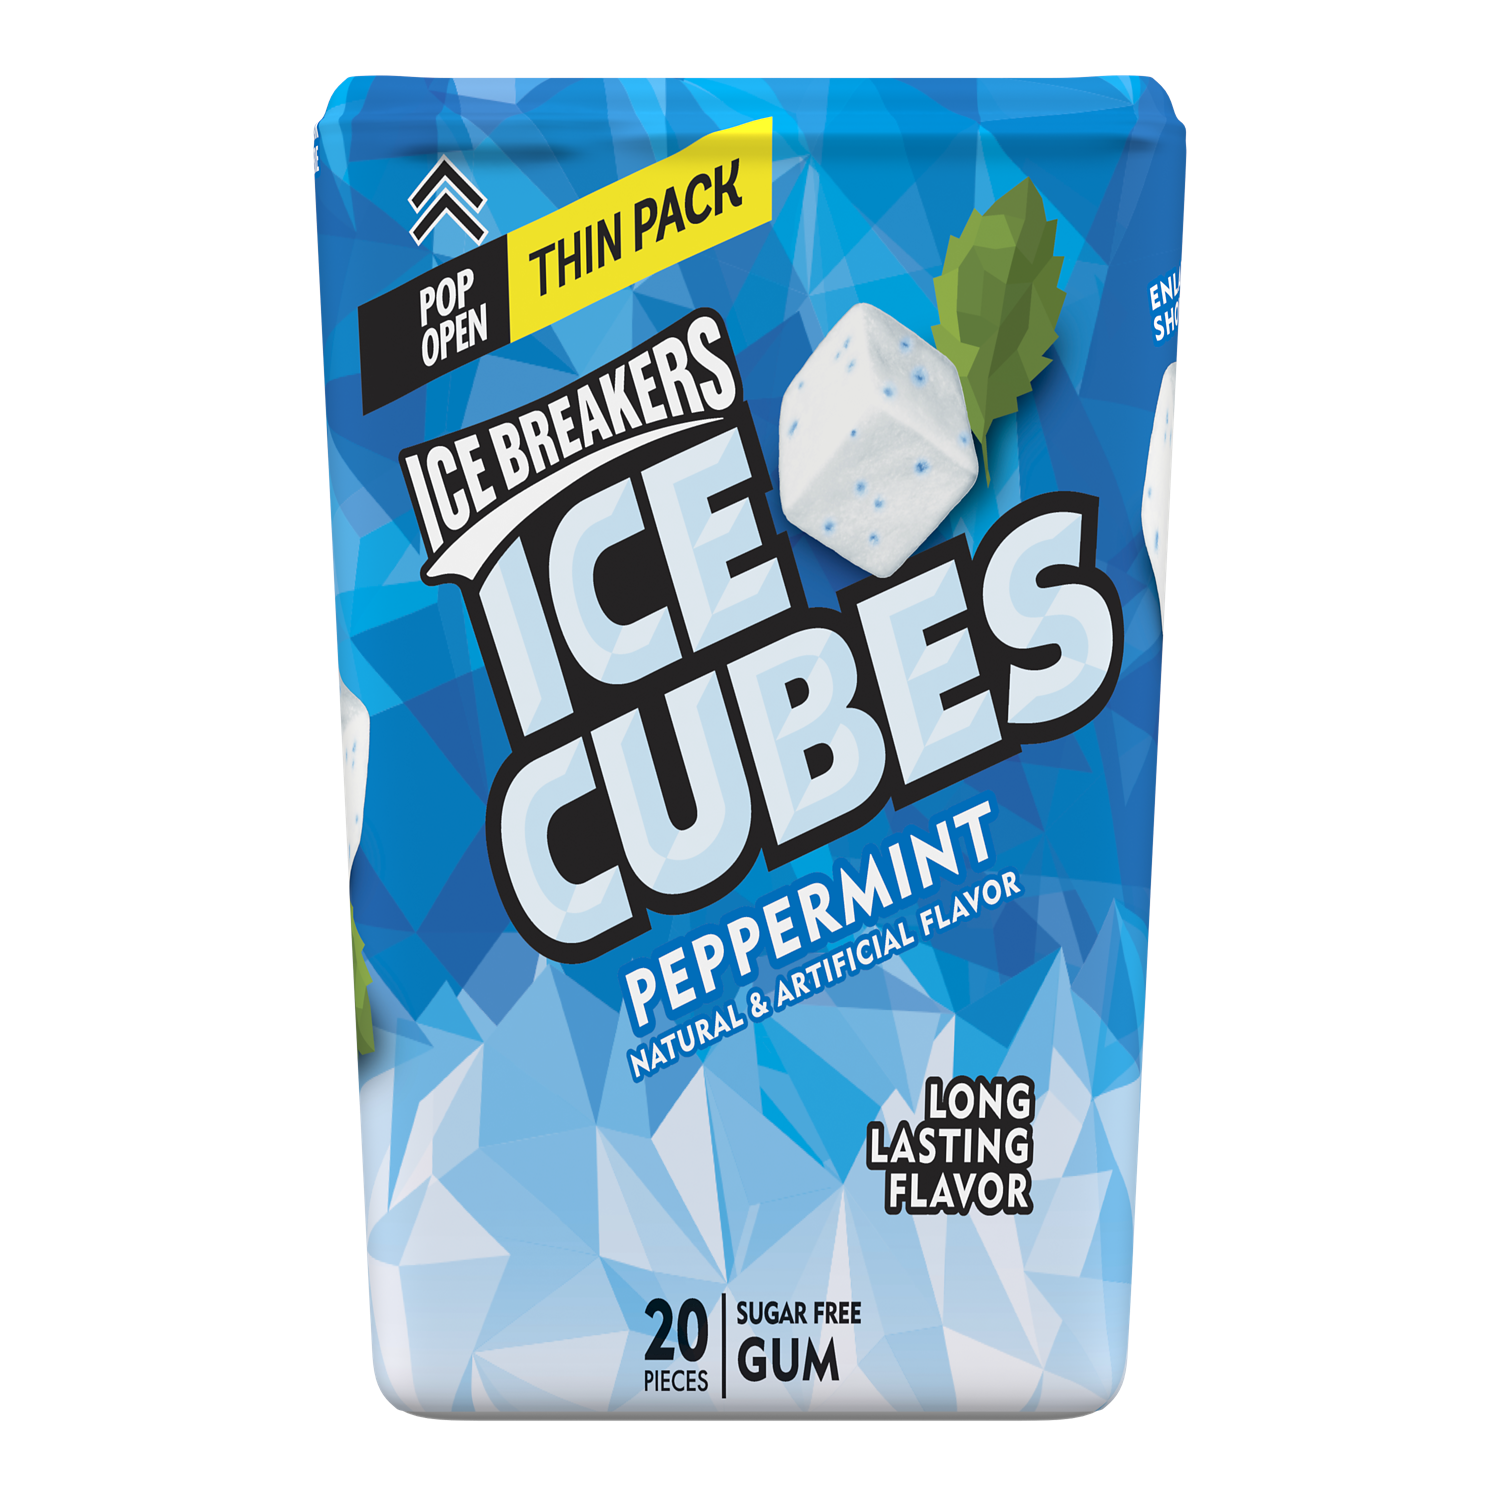 ICE BREAKERS ICE CUBES Peppermint Sugar Free Gum, 1.62 oz thin pack, 20 pieces - Front of Package